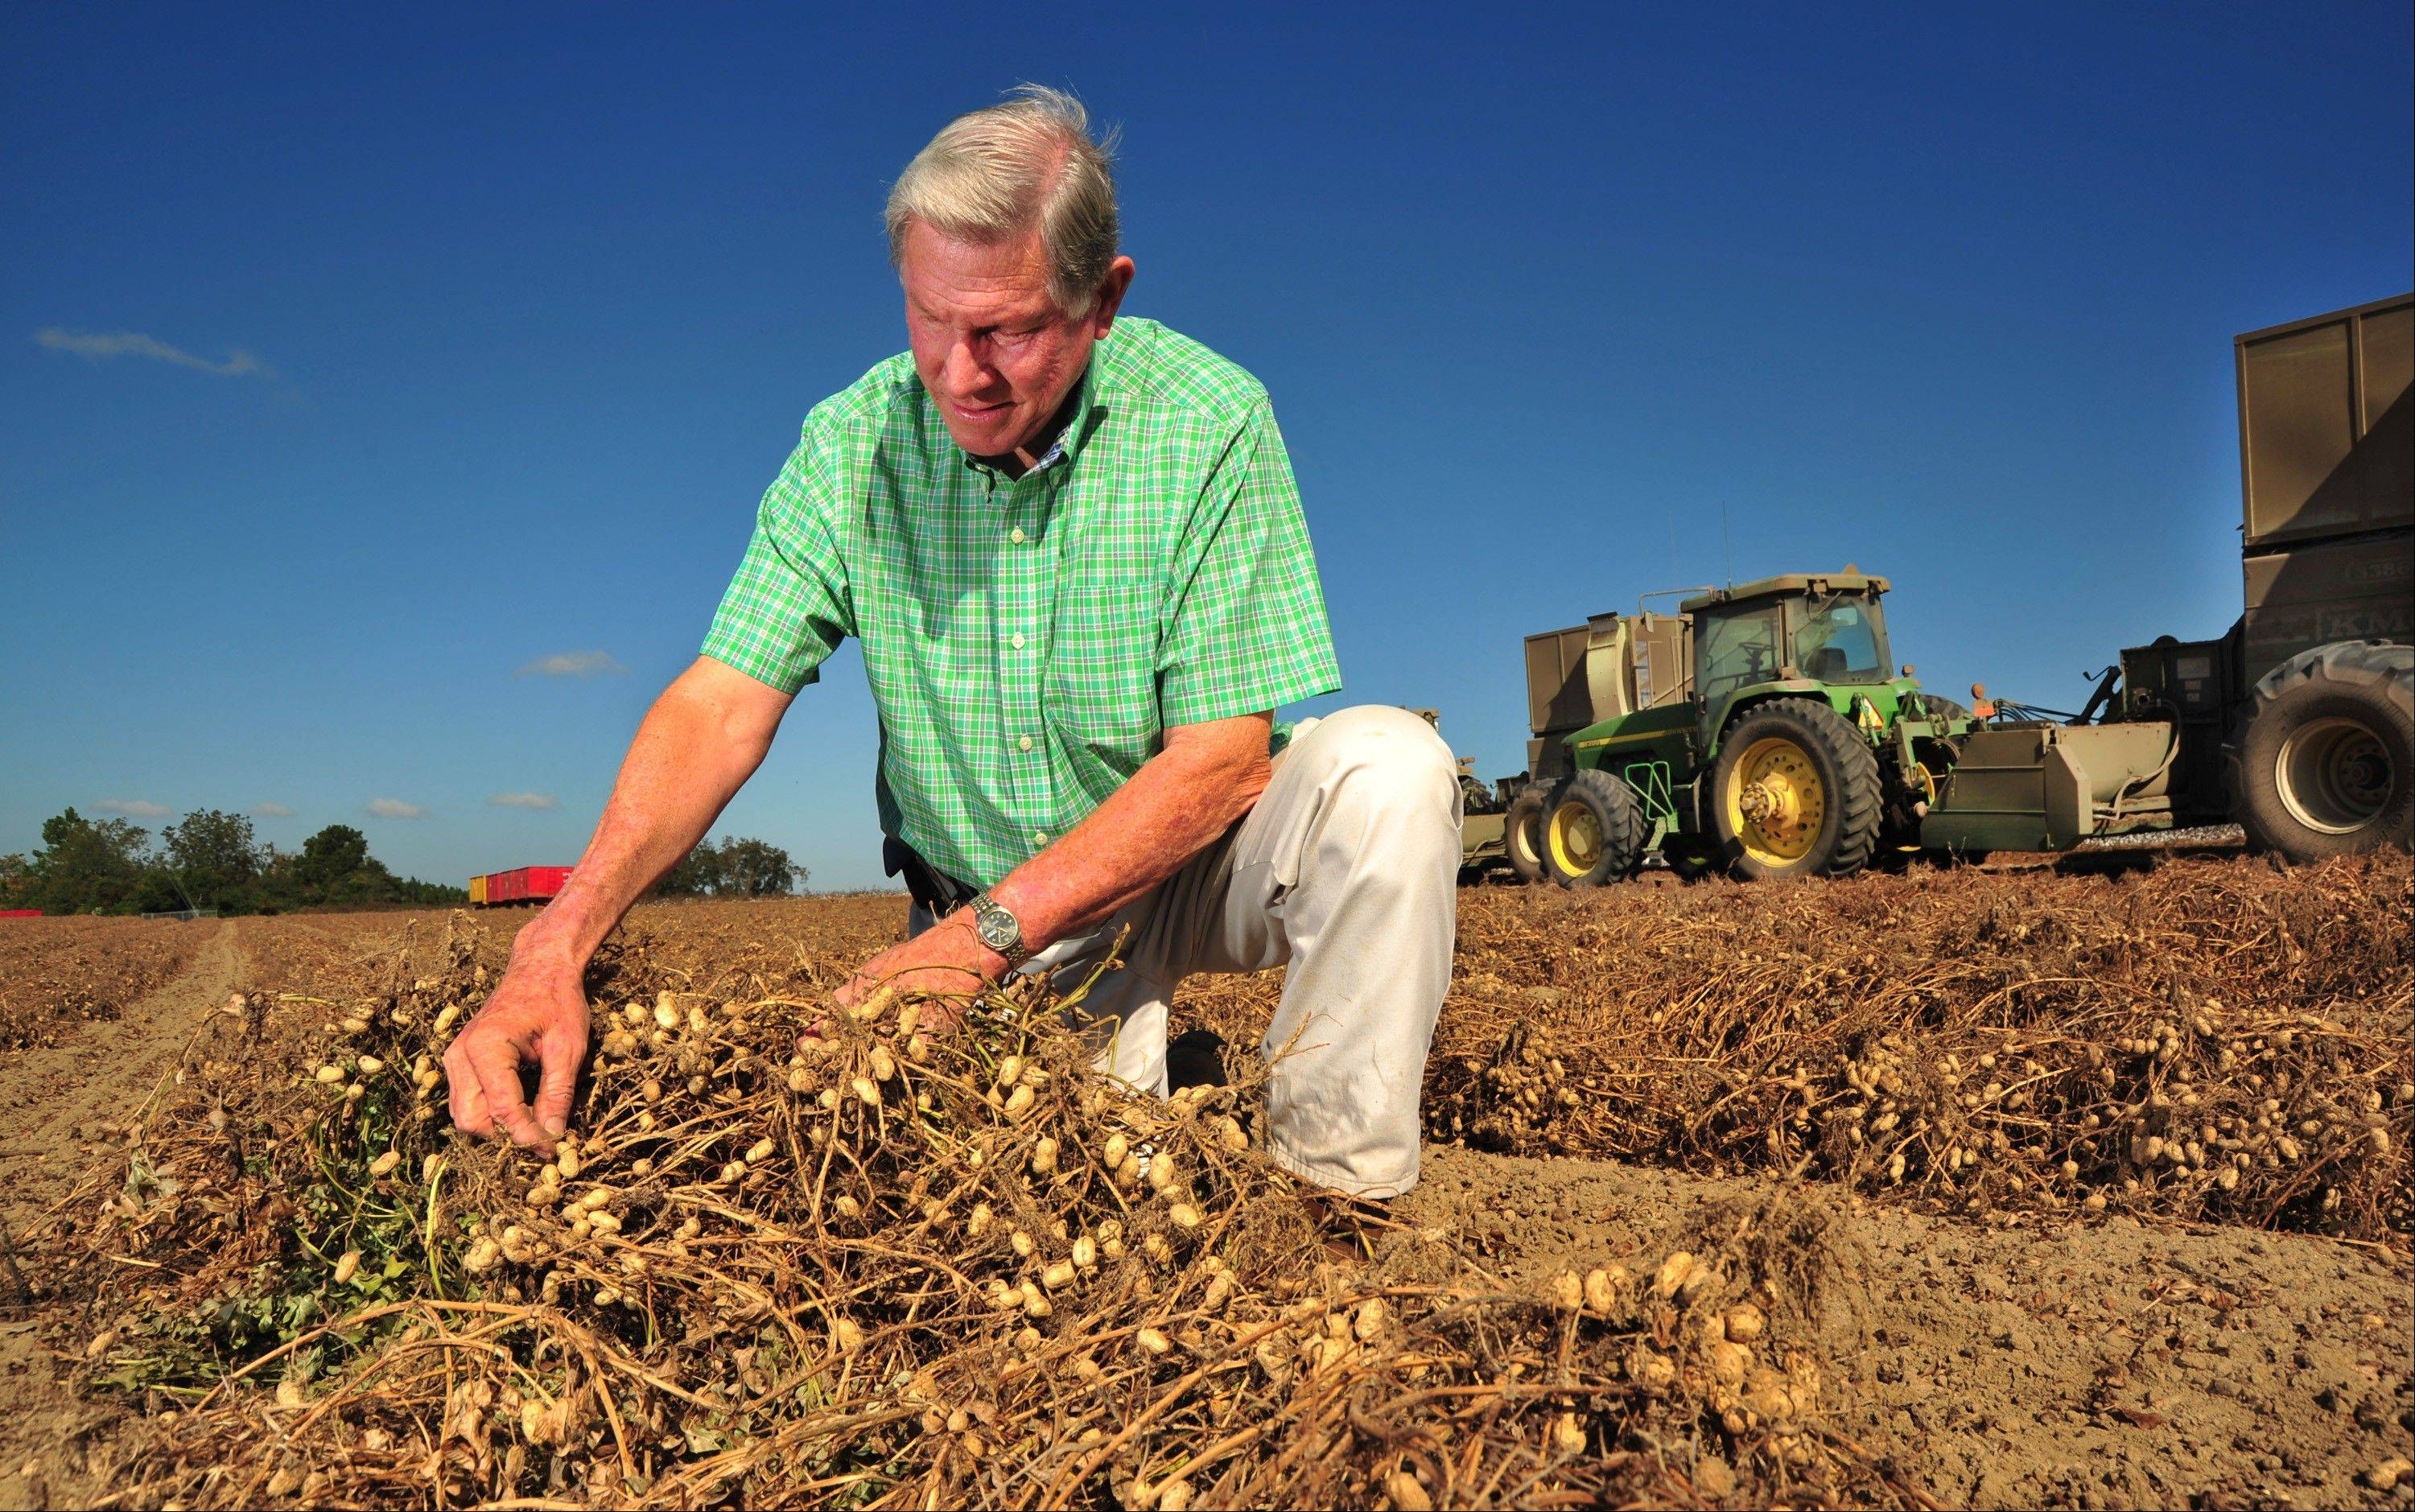 Peanut grower Armond Morris examines peanuts ready for harvest at his Irwinville, Ga., farm .